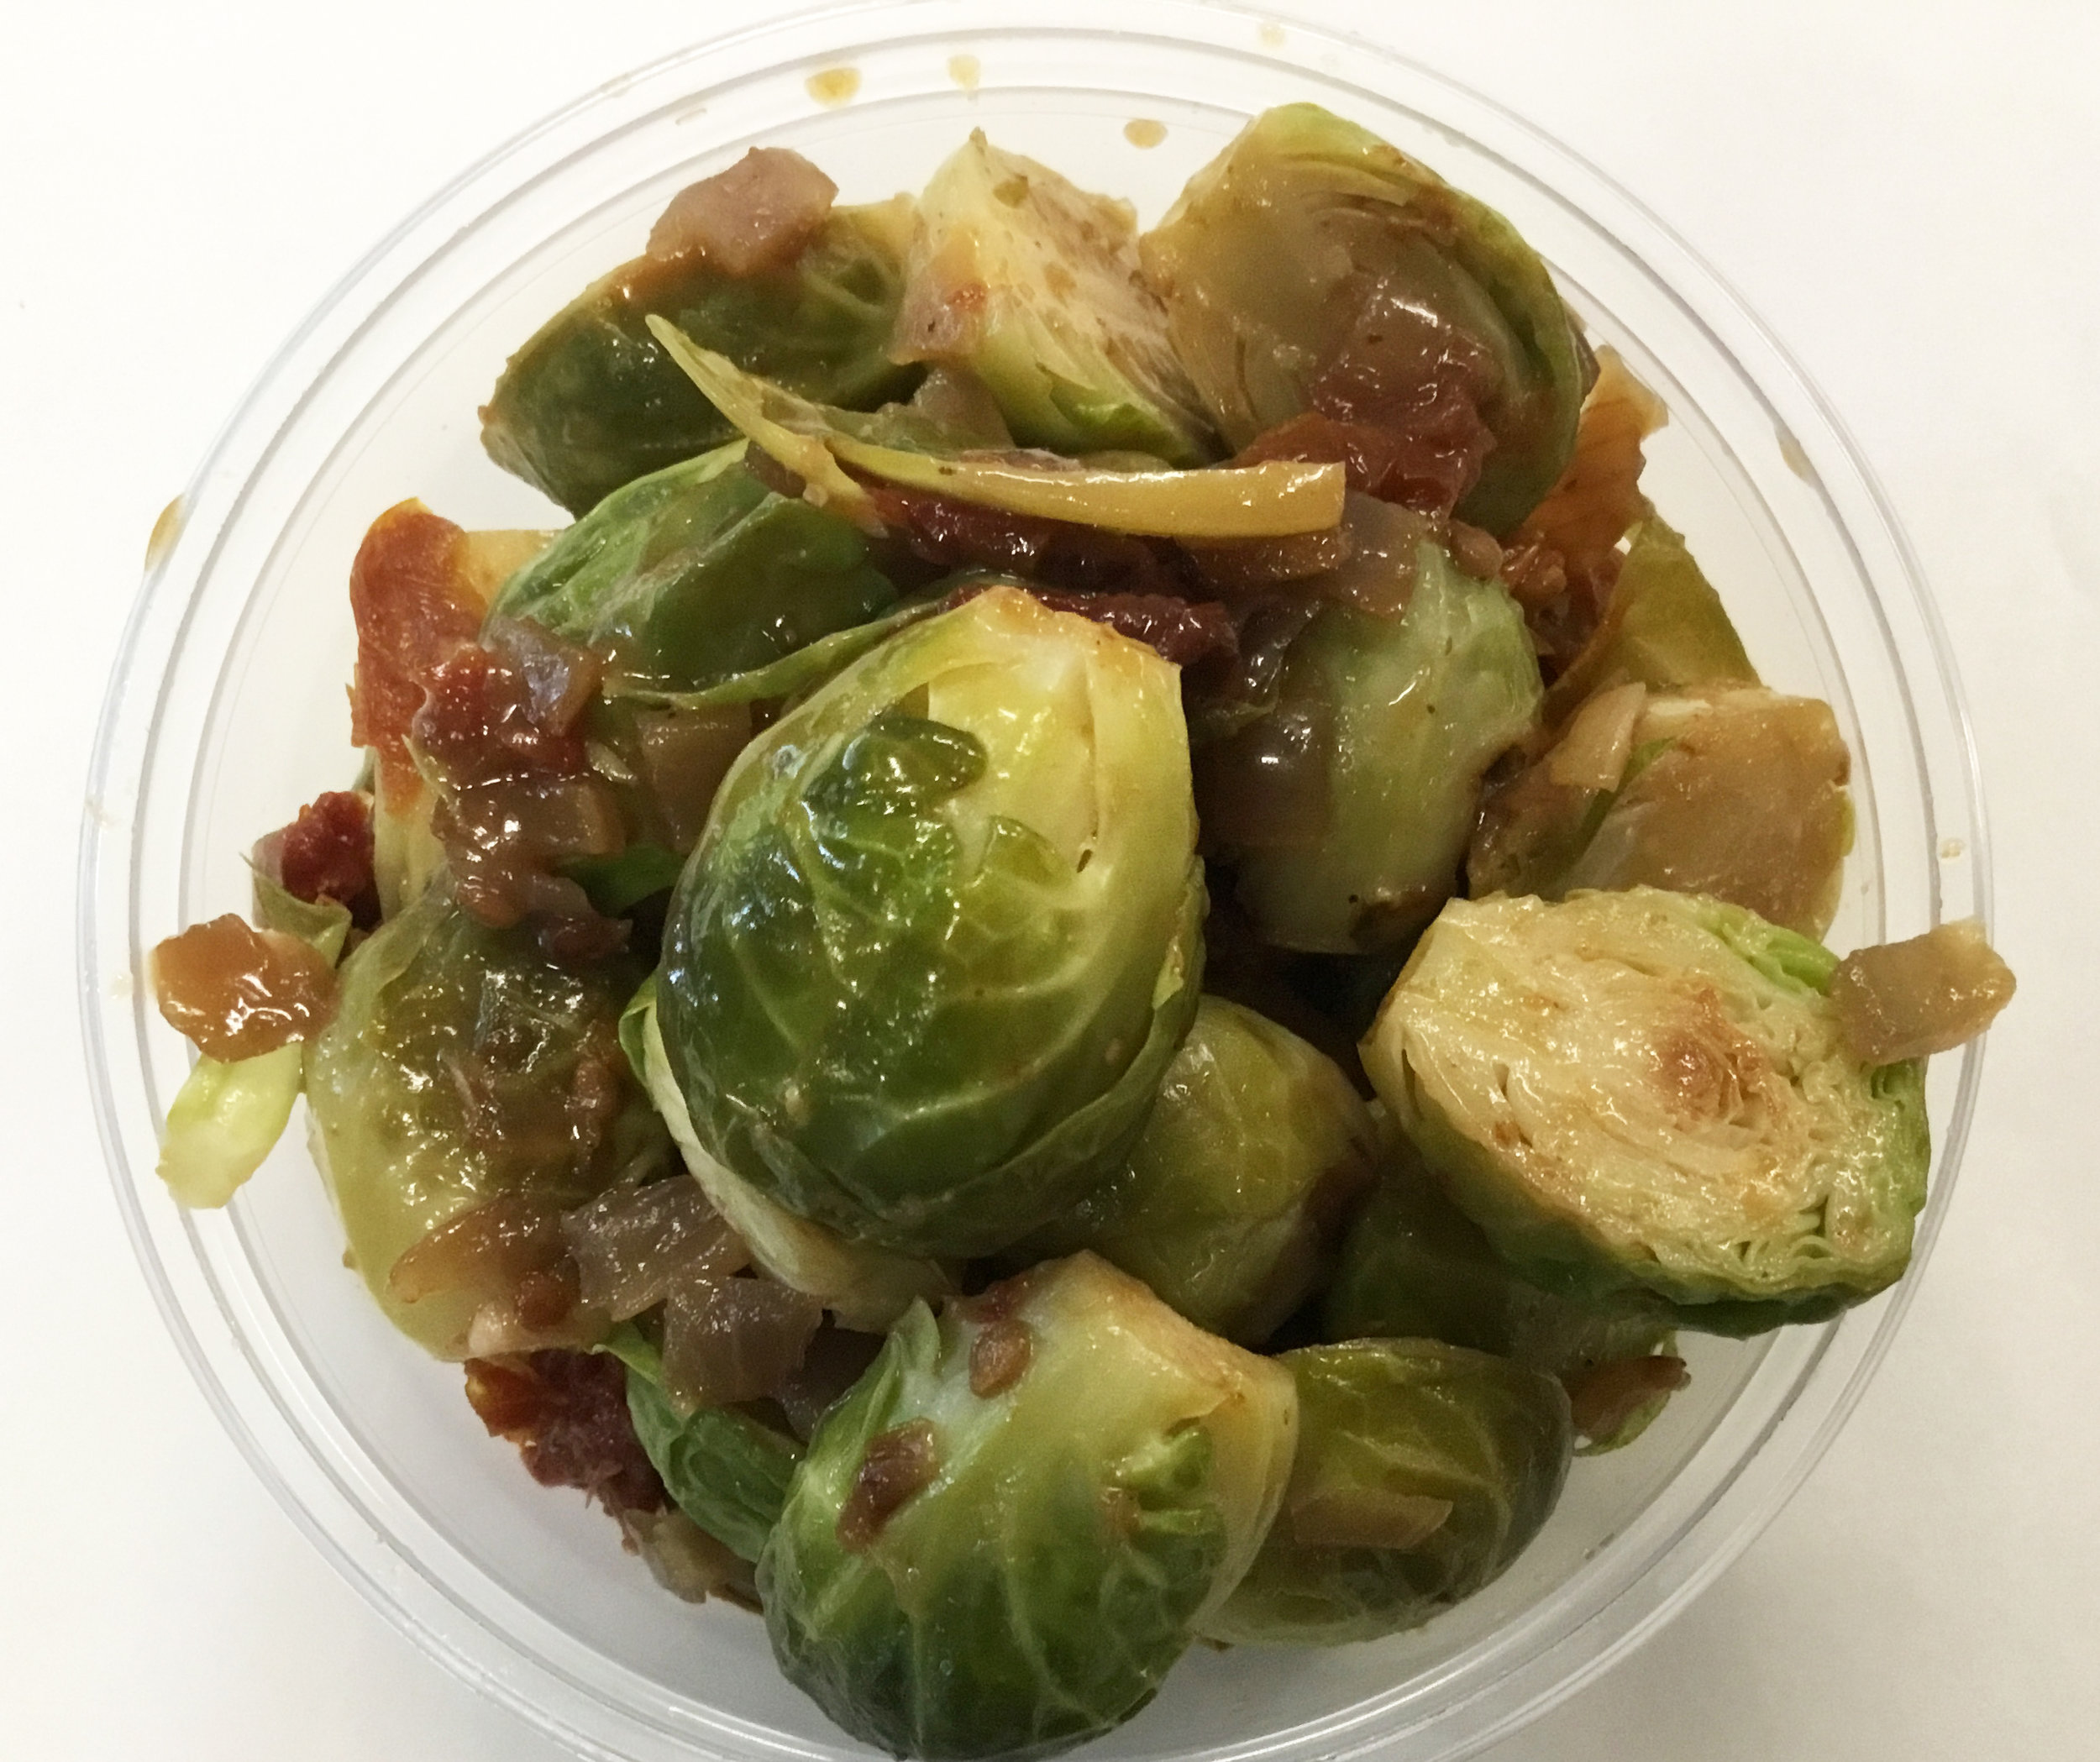 water and oil sauteed brussels sprouts and sun dried tomato